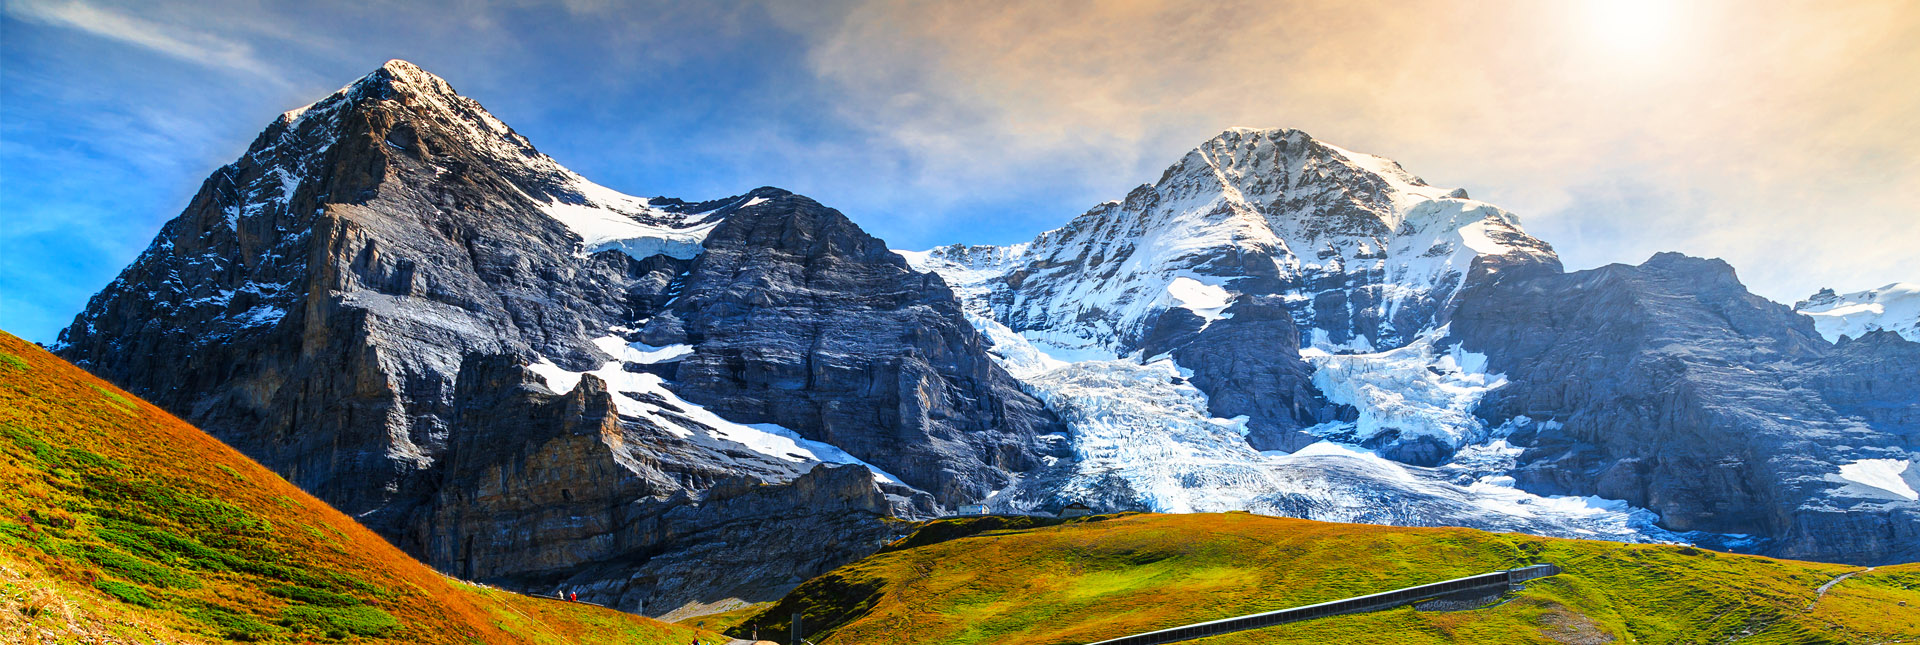 View of Eiger